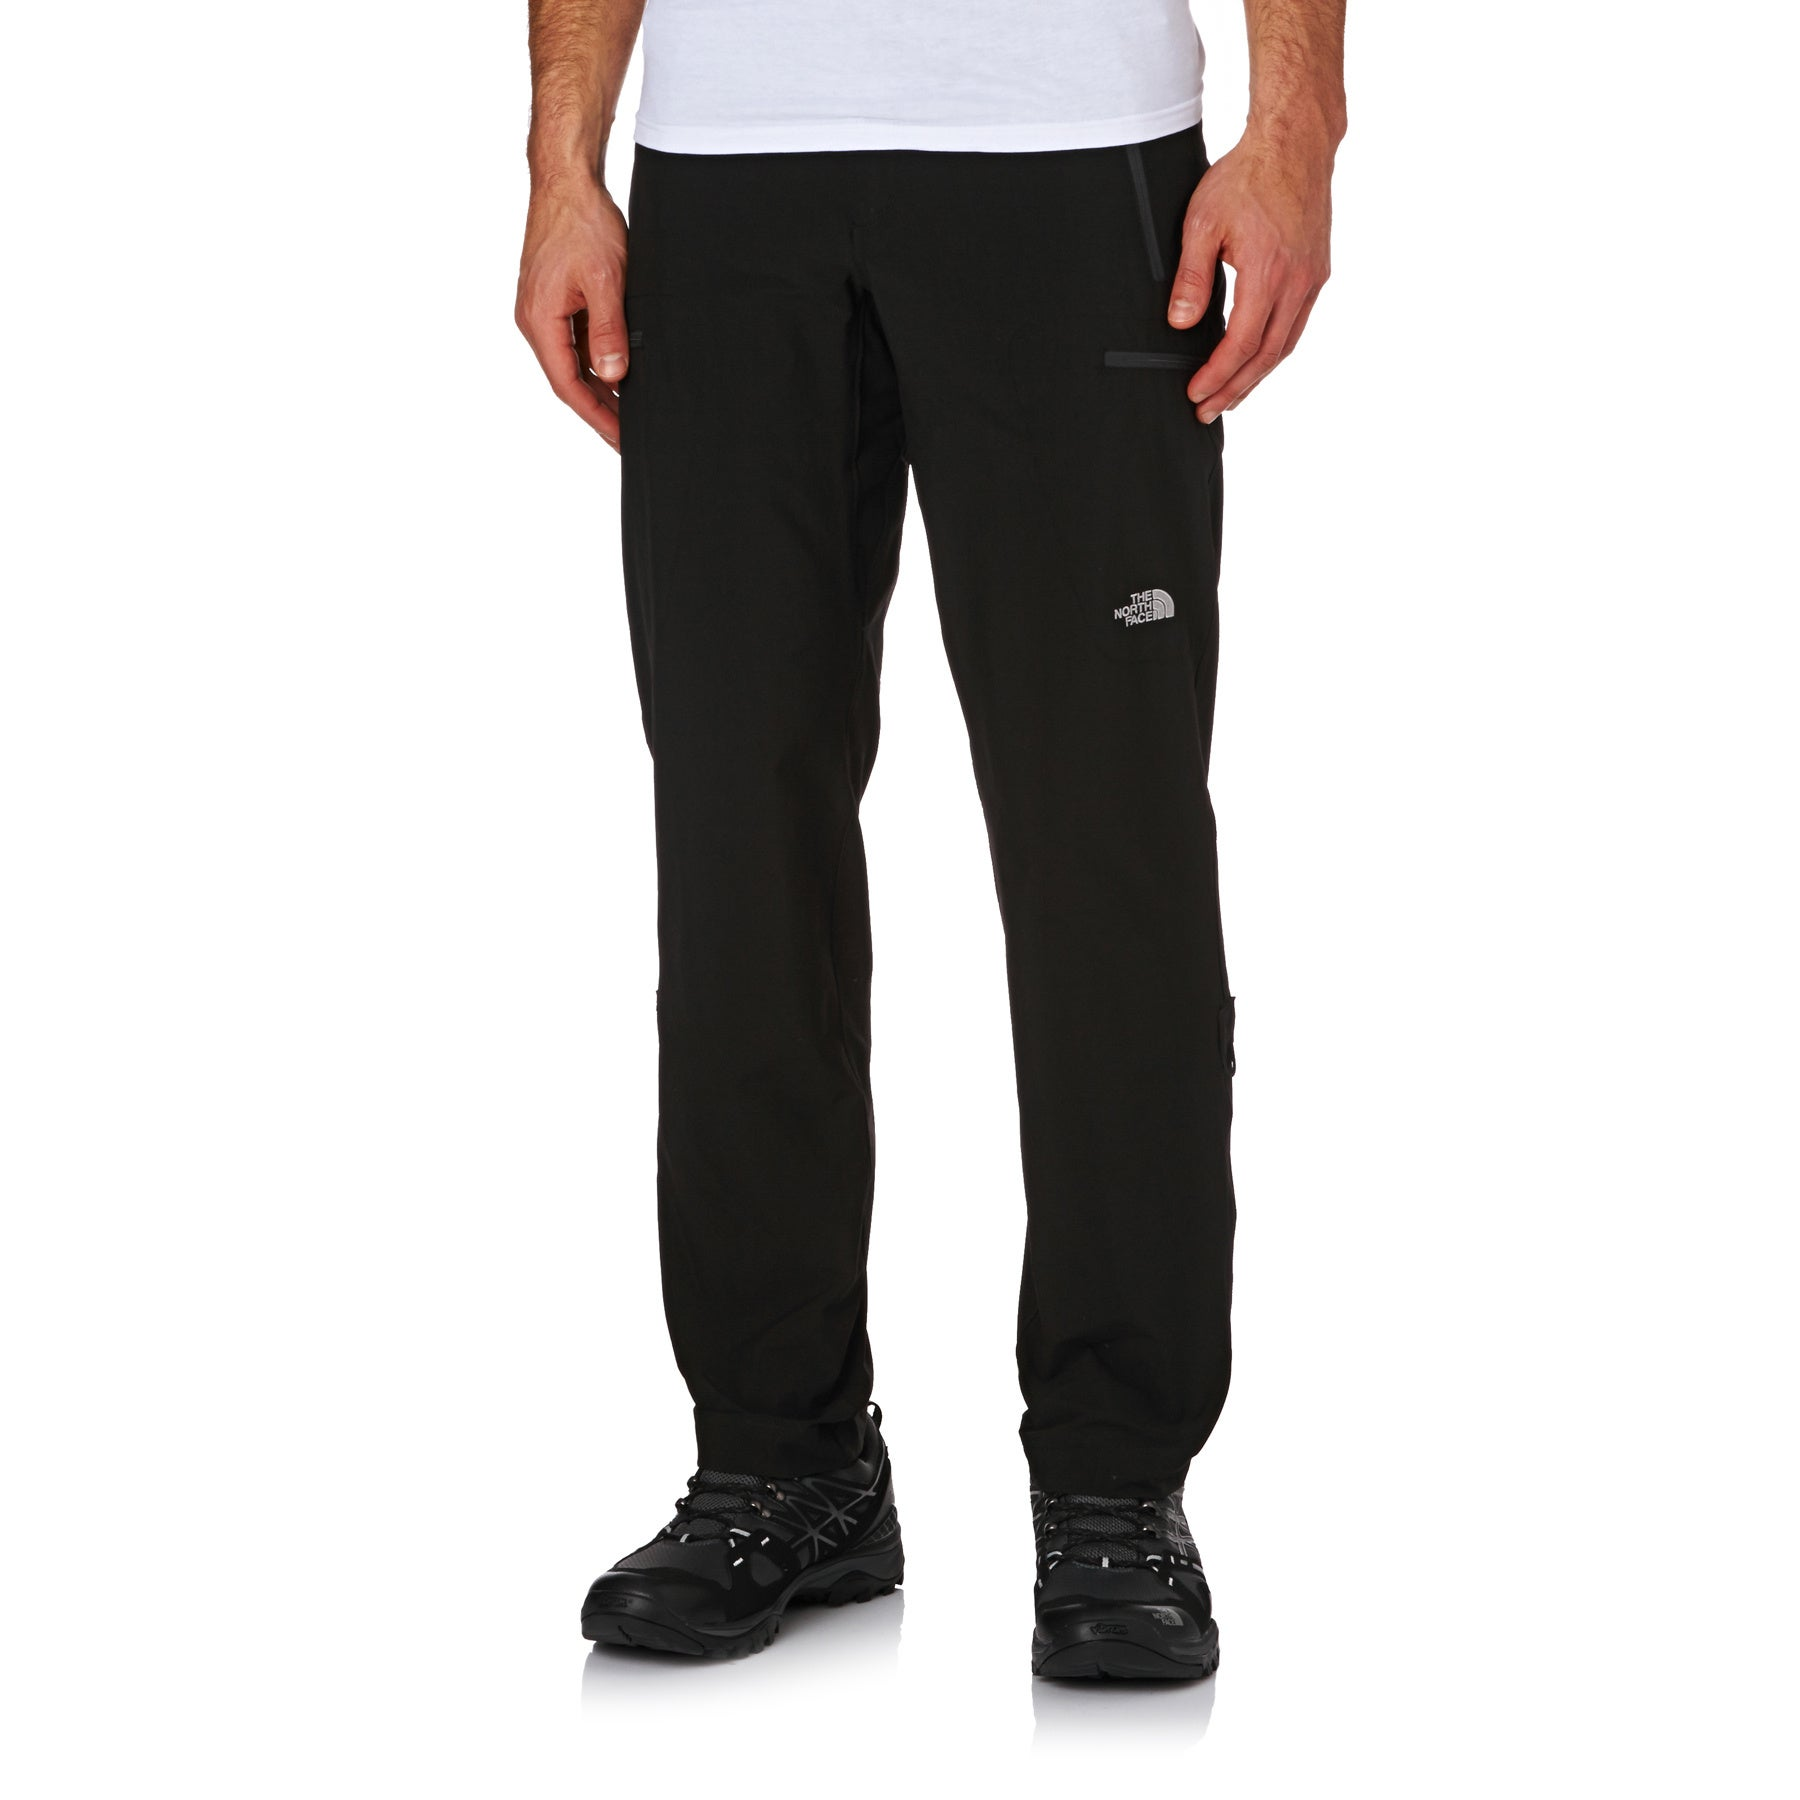 North Face Exploration Cargo Pants - Tnf Black